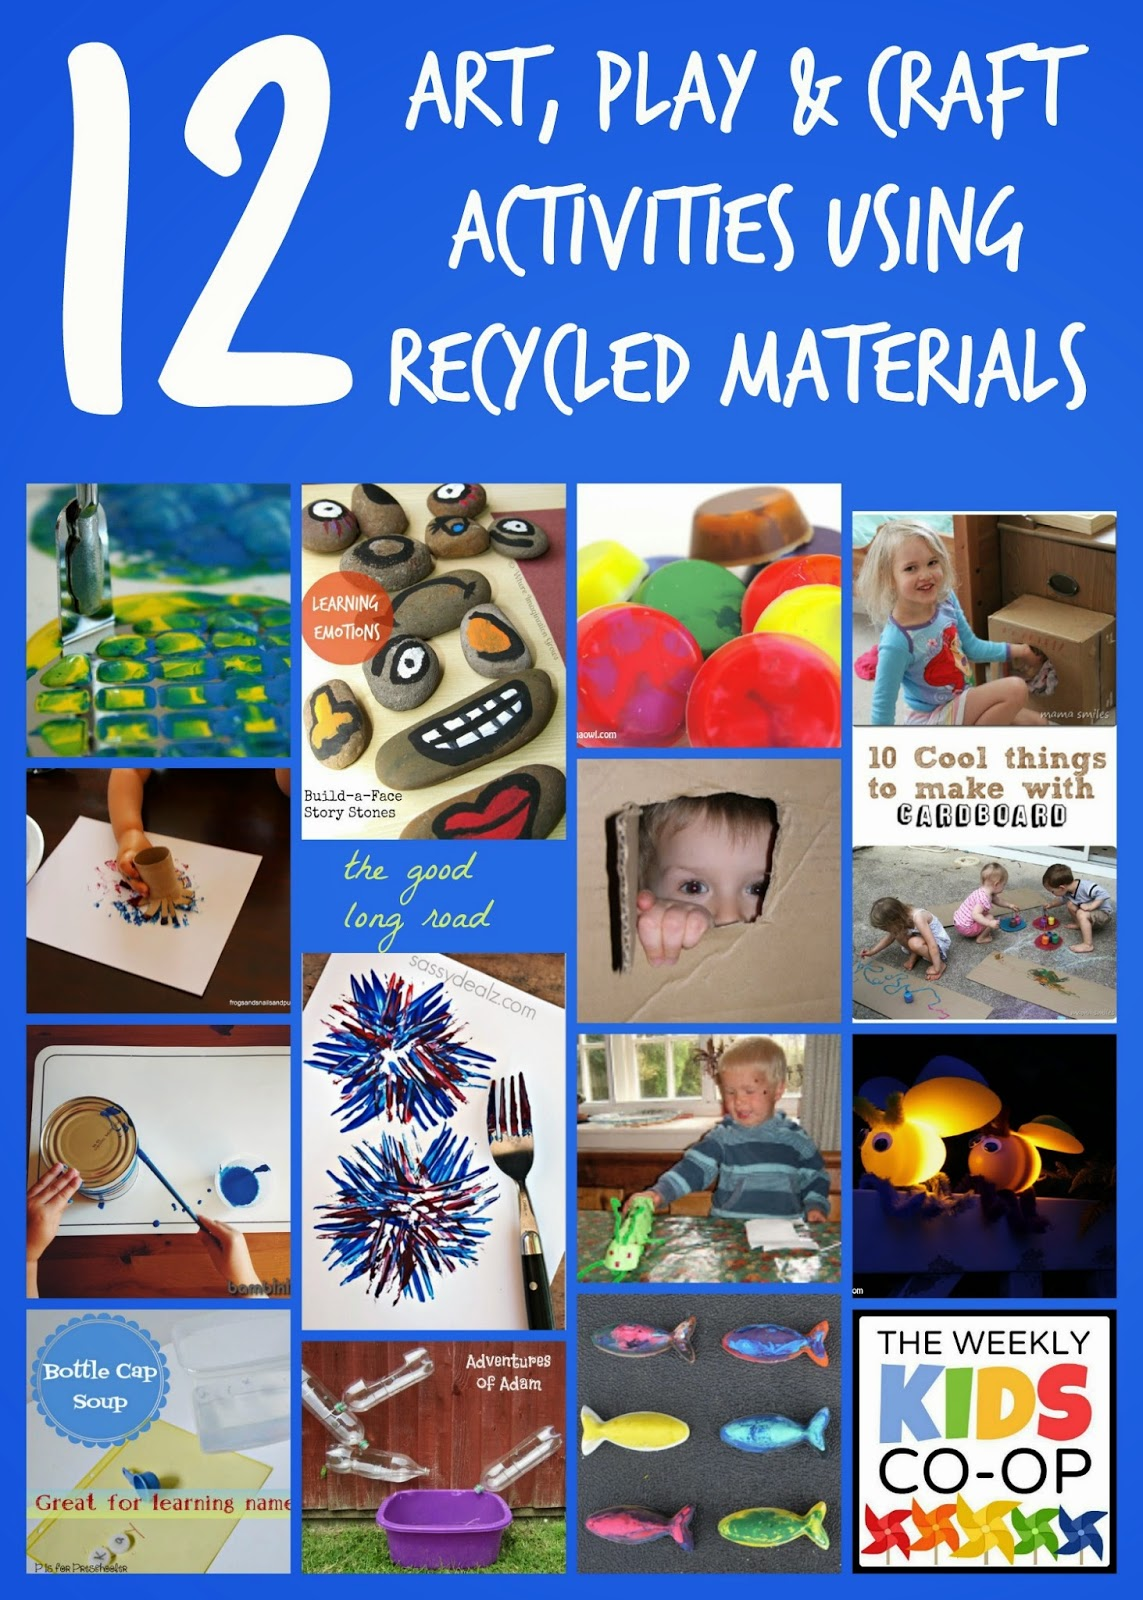 You Ignite Their Imaginations As They Begin Re Purposing Common Household Items Or Recycled Materials Too Whats Not To Love About All Of That